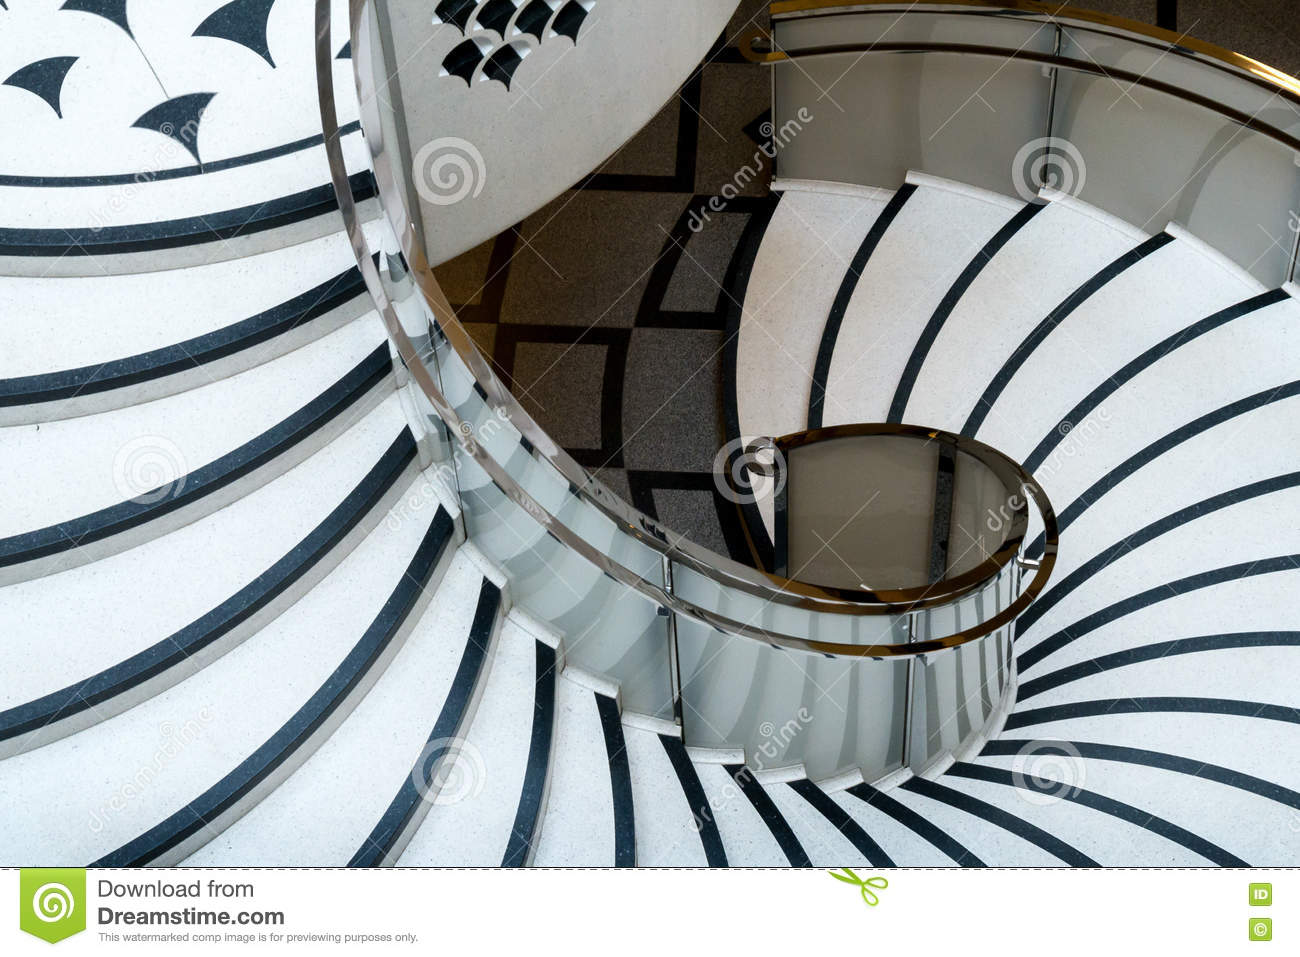 Tate Britain Spiral Staircase em Londres